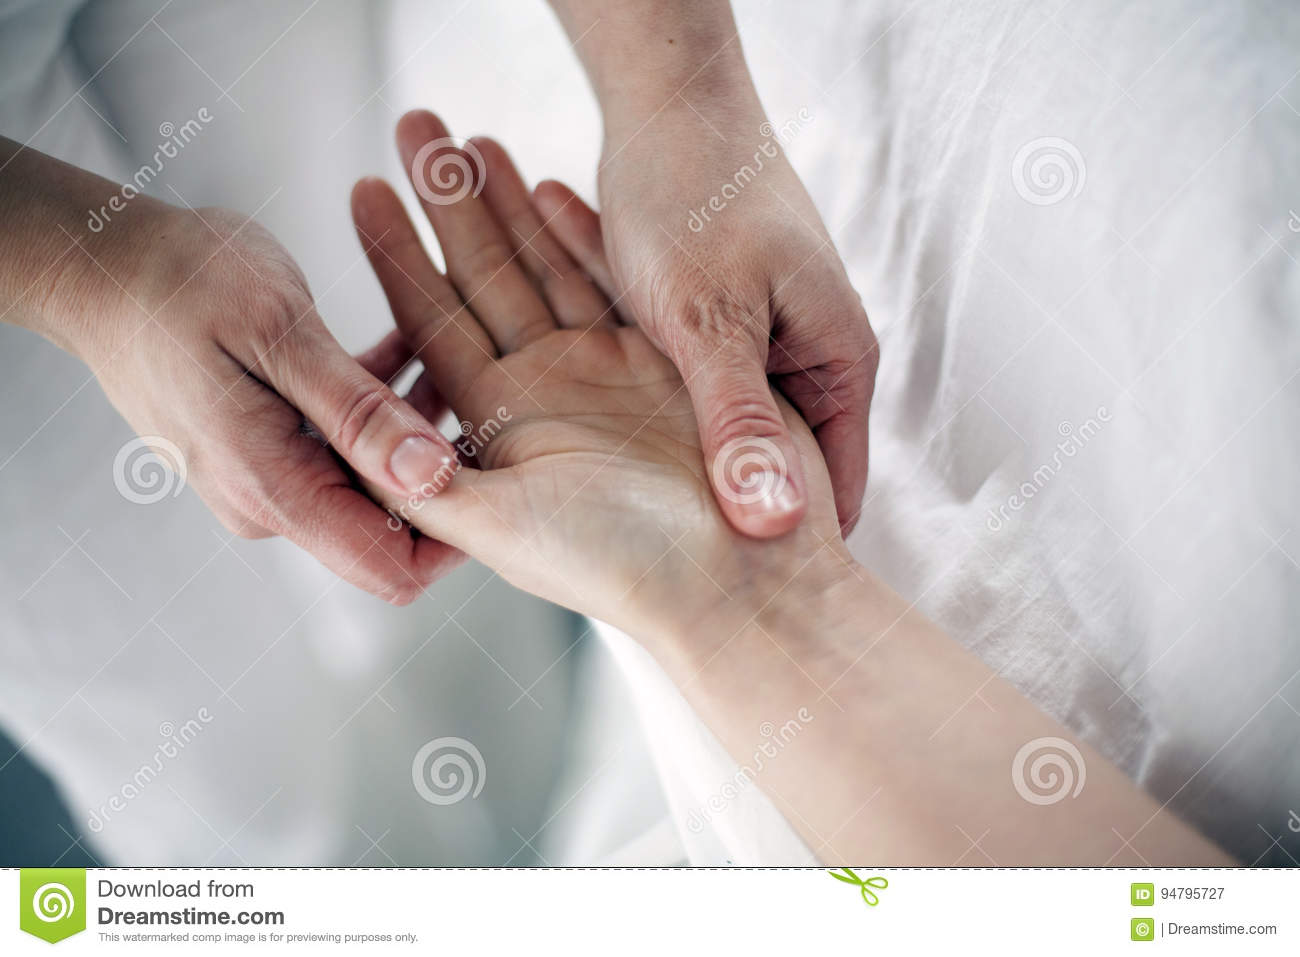 Manual therapy on the palms of the hands